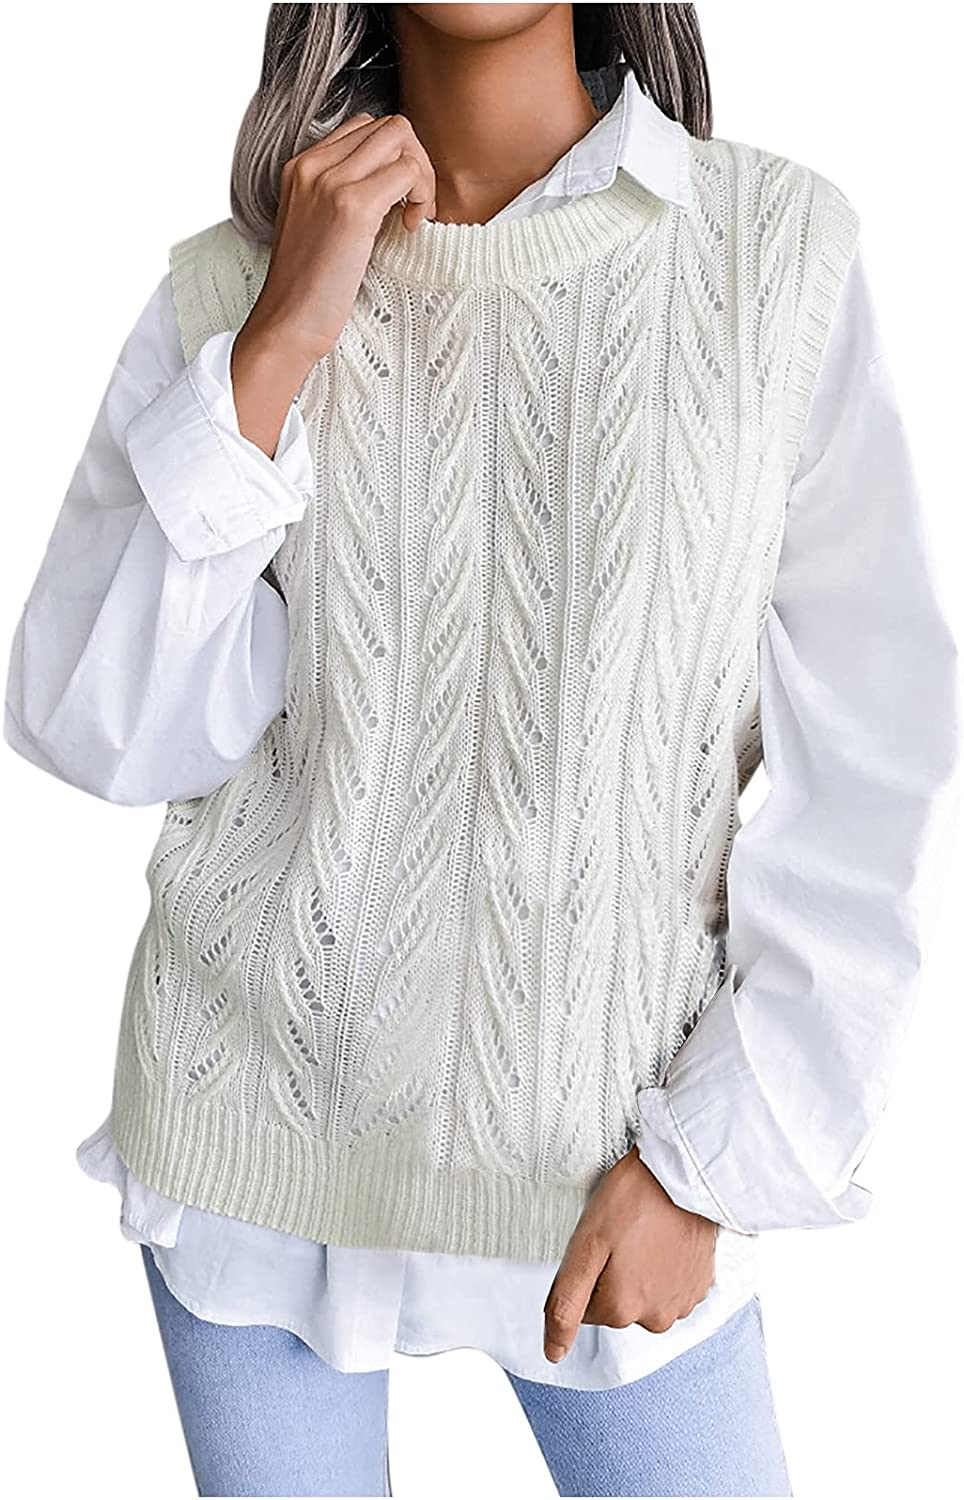 GUIH Women's Solid Color Round Neck Hollow Casual Knitted Fir Fashion Vest Sweater Vest